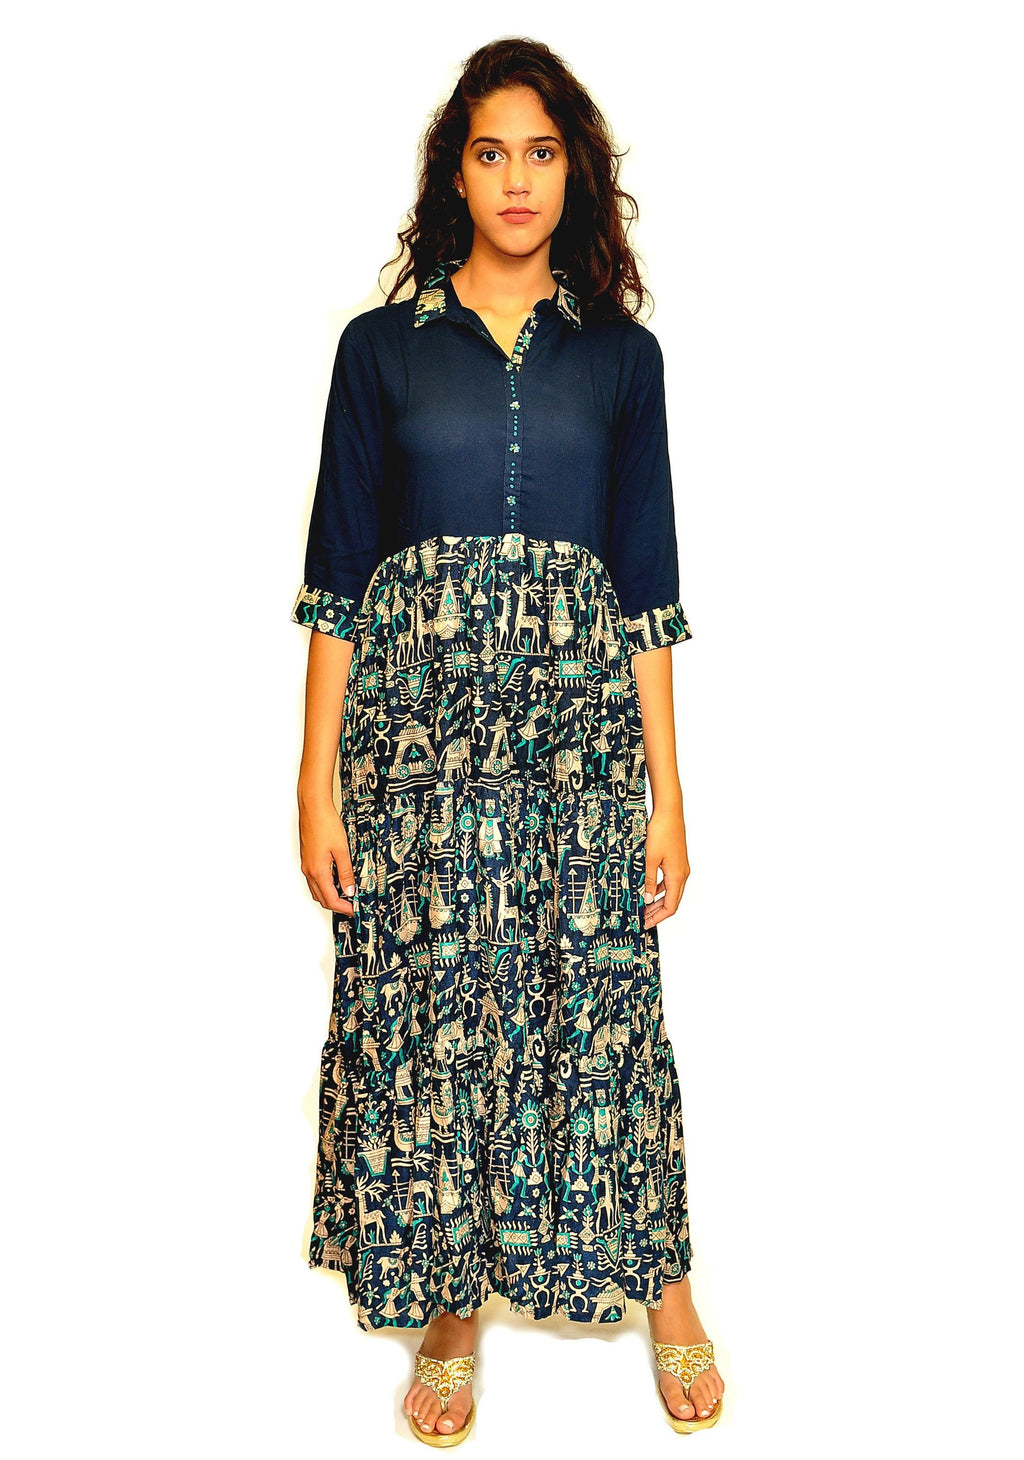 Floral Print Navy Blue Dress